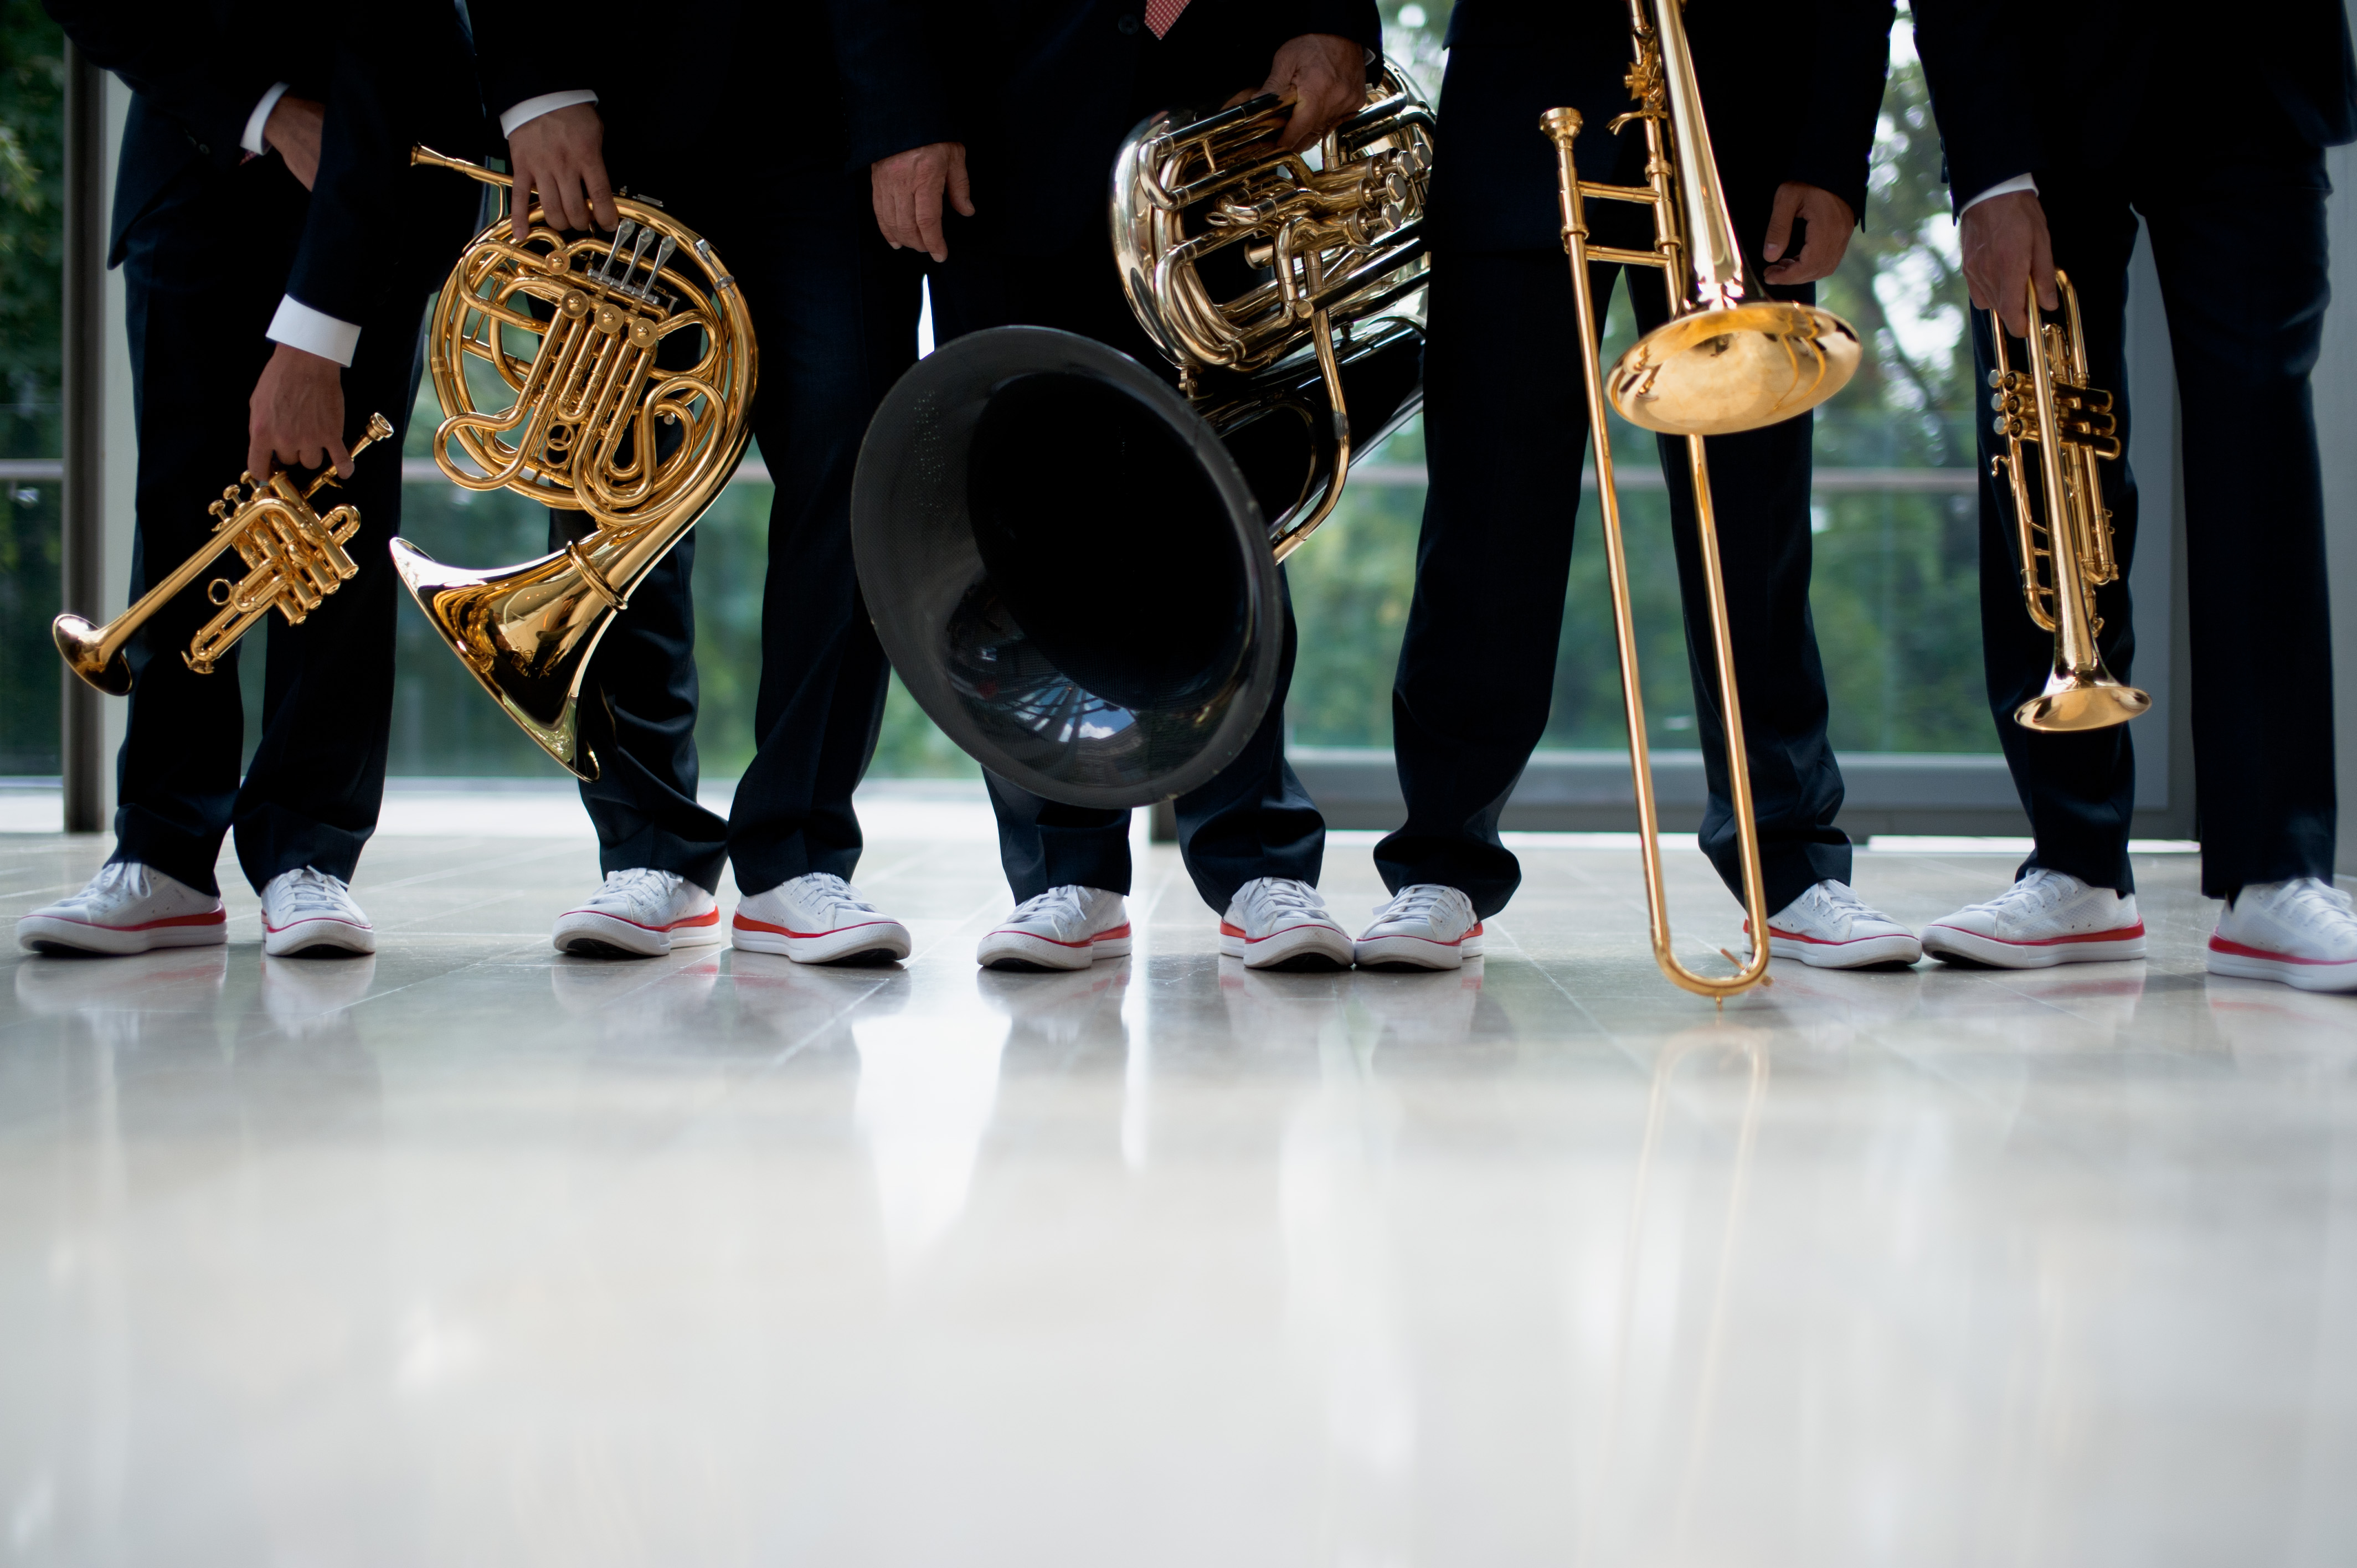 Tickets for Canadian Brass in Des Moines from MIDWESTIX